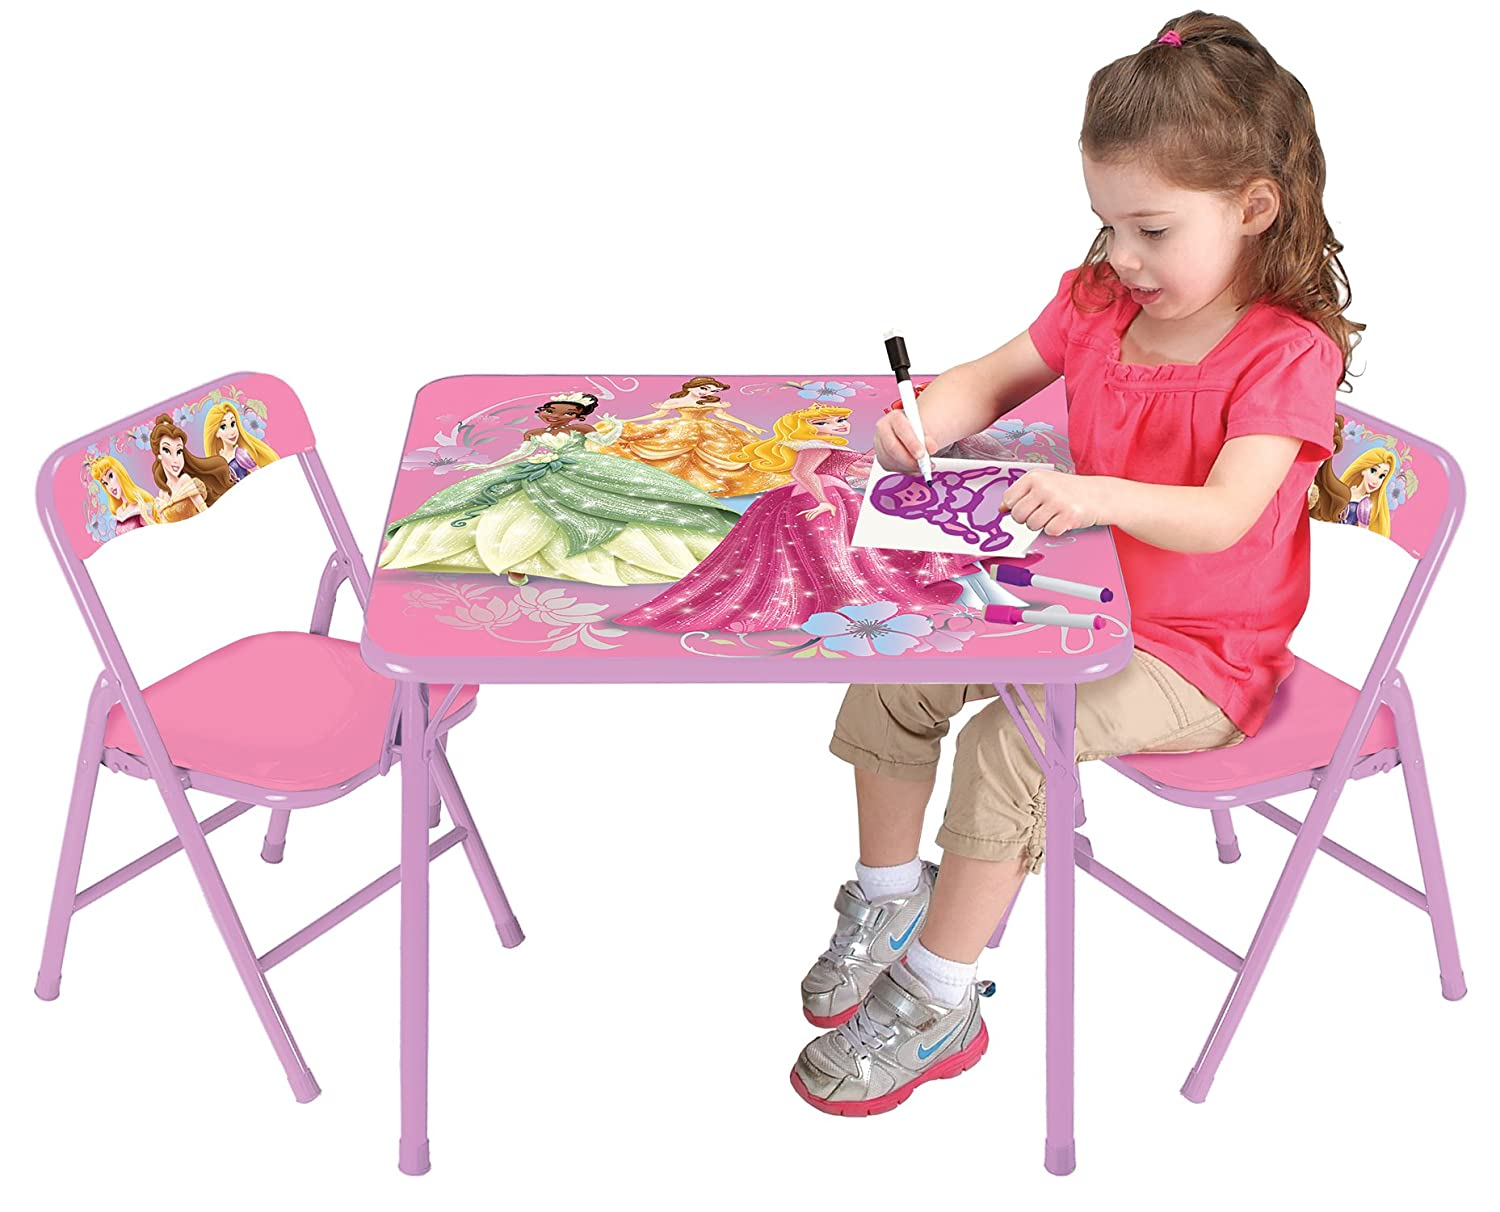 sc 1 st  Amazon.com & Amazon.com: Disney Princess Nouveau Activity Table Set: Toys u0026 Games